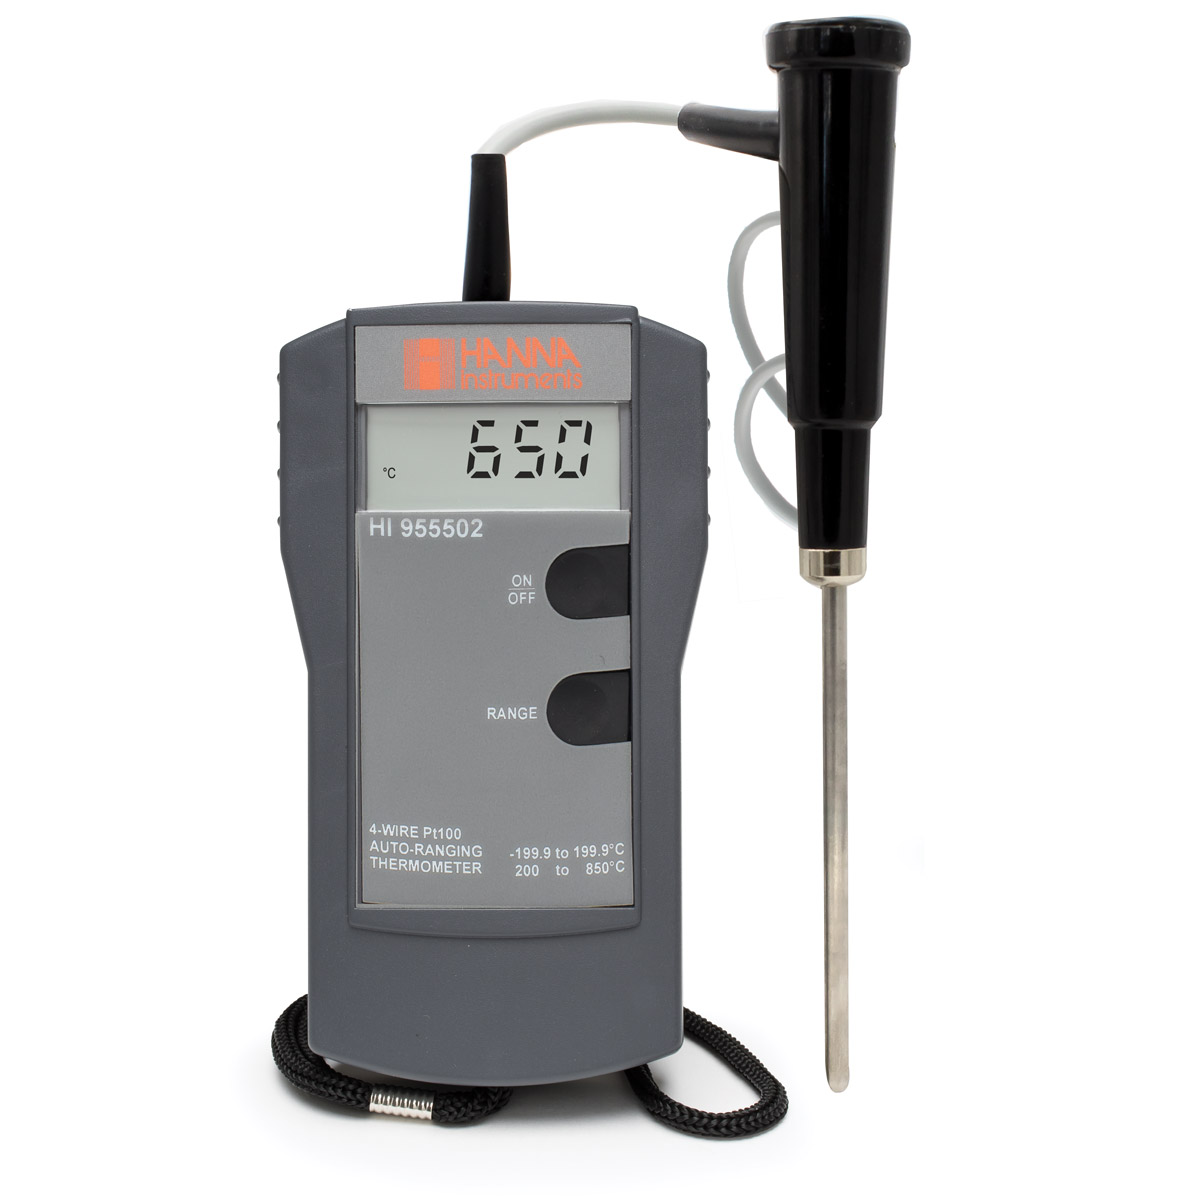 4-Wire Pt100 Thermometer with Fixed Probe - HI955502